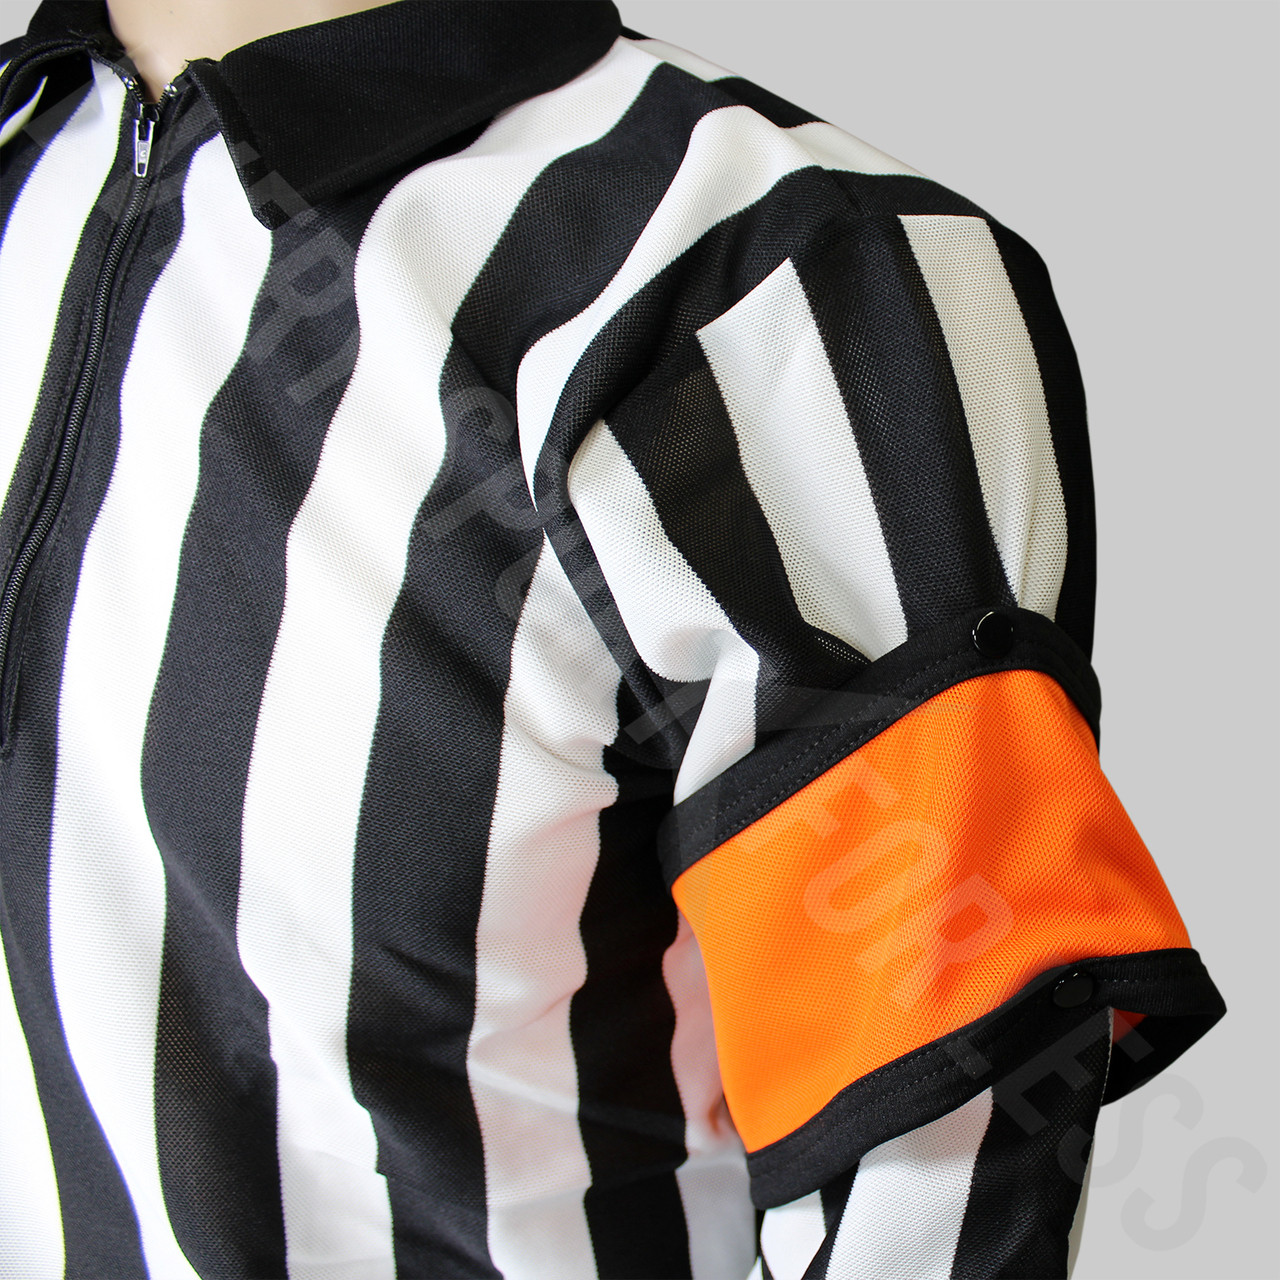 0dcd094de0b ... CCM Official Referee Armband Set - Orange